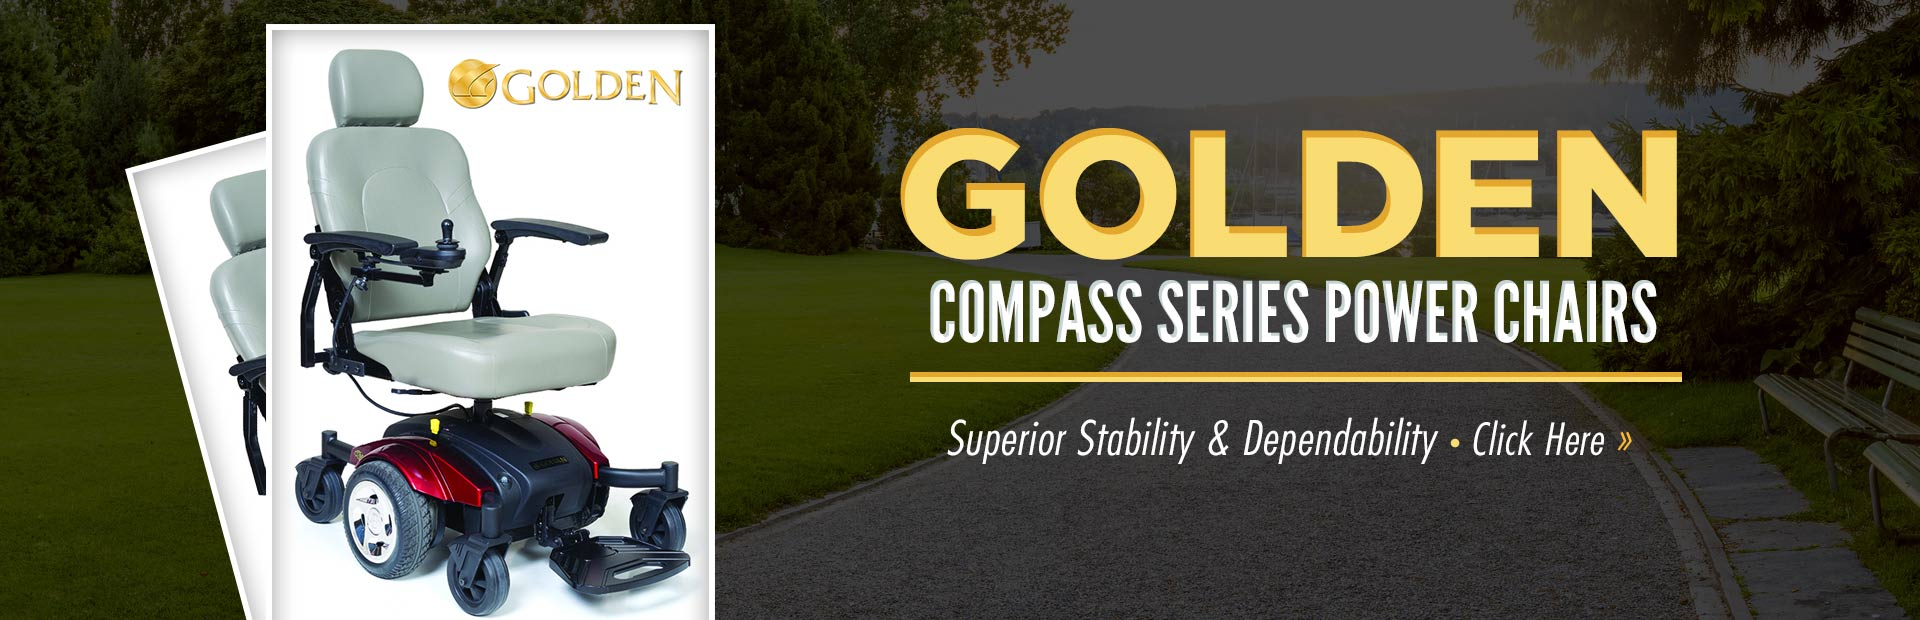 Golden Compass Series Power Chairs: Click here to view the models.